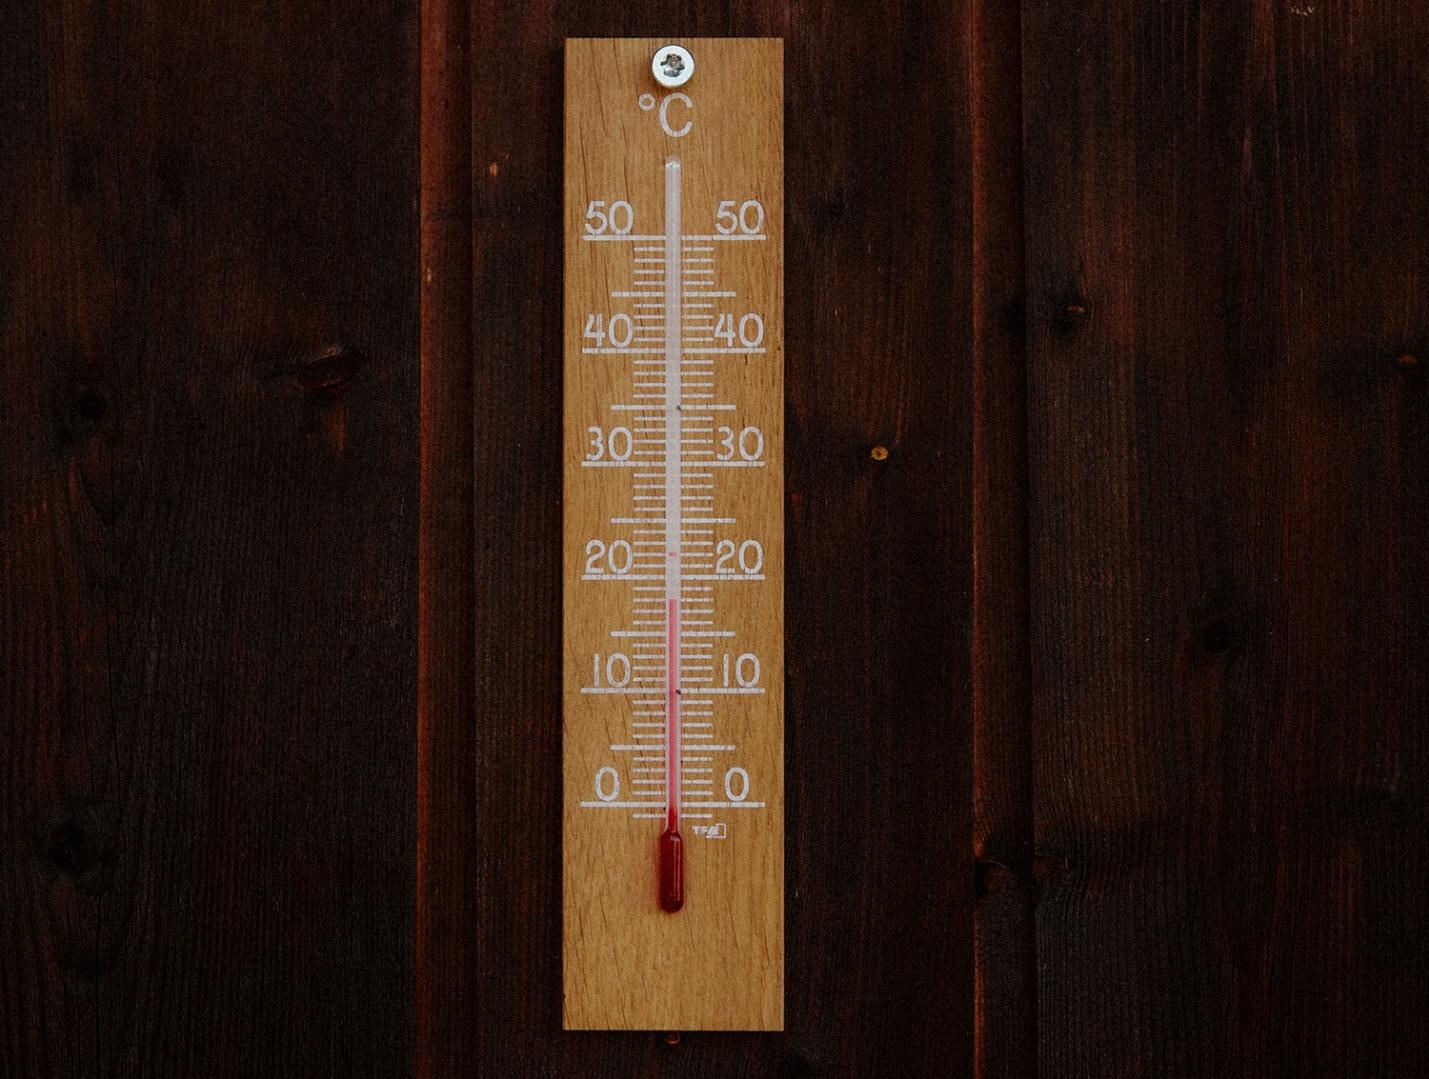 Mercury thermometer at 18 degrees.